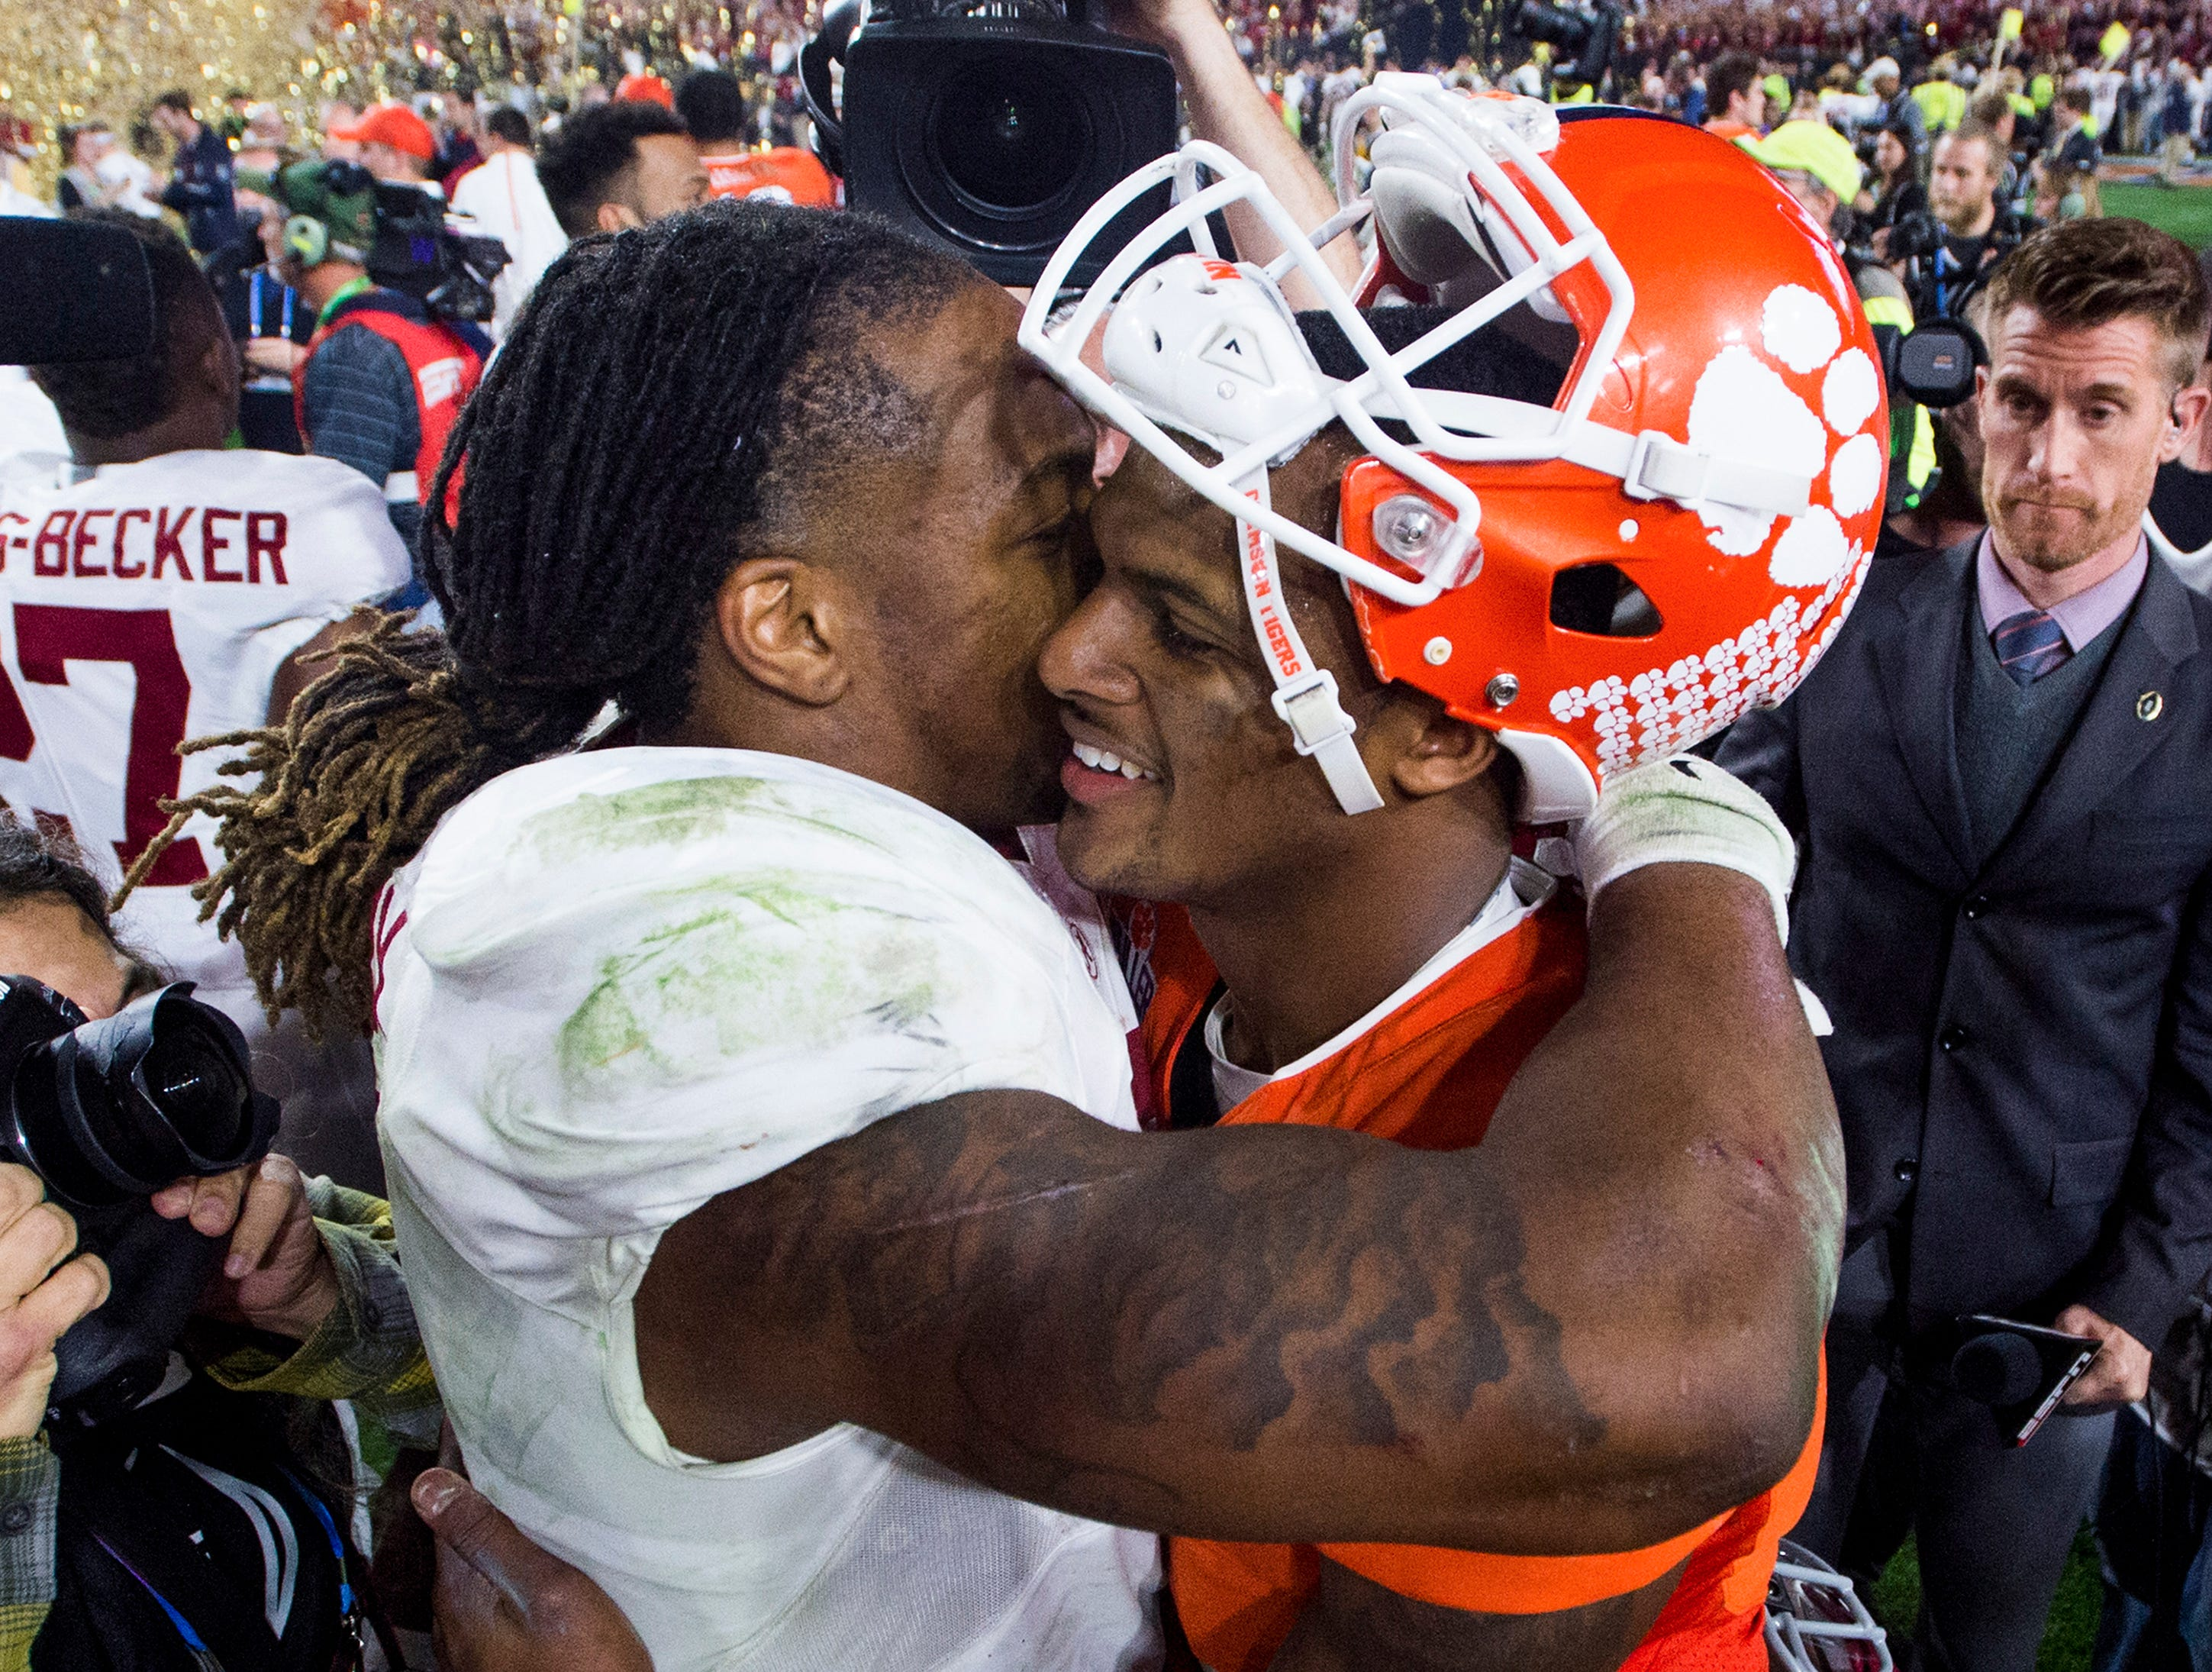 Alabama running back Derrick Henry (2) and Clemson quarterback Deshaun Watson (4)  hug following the College Football Playoff Championship Game on Monday January 11, 2016 at University of Phoenix Stadium in Glendale, Az.